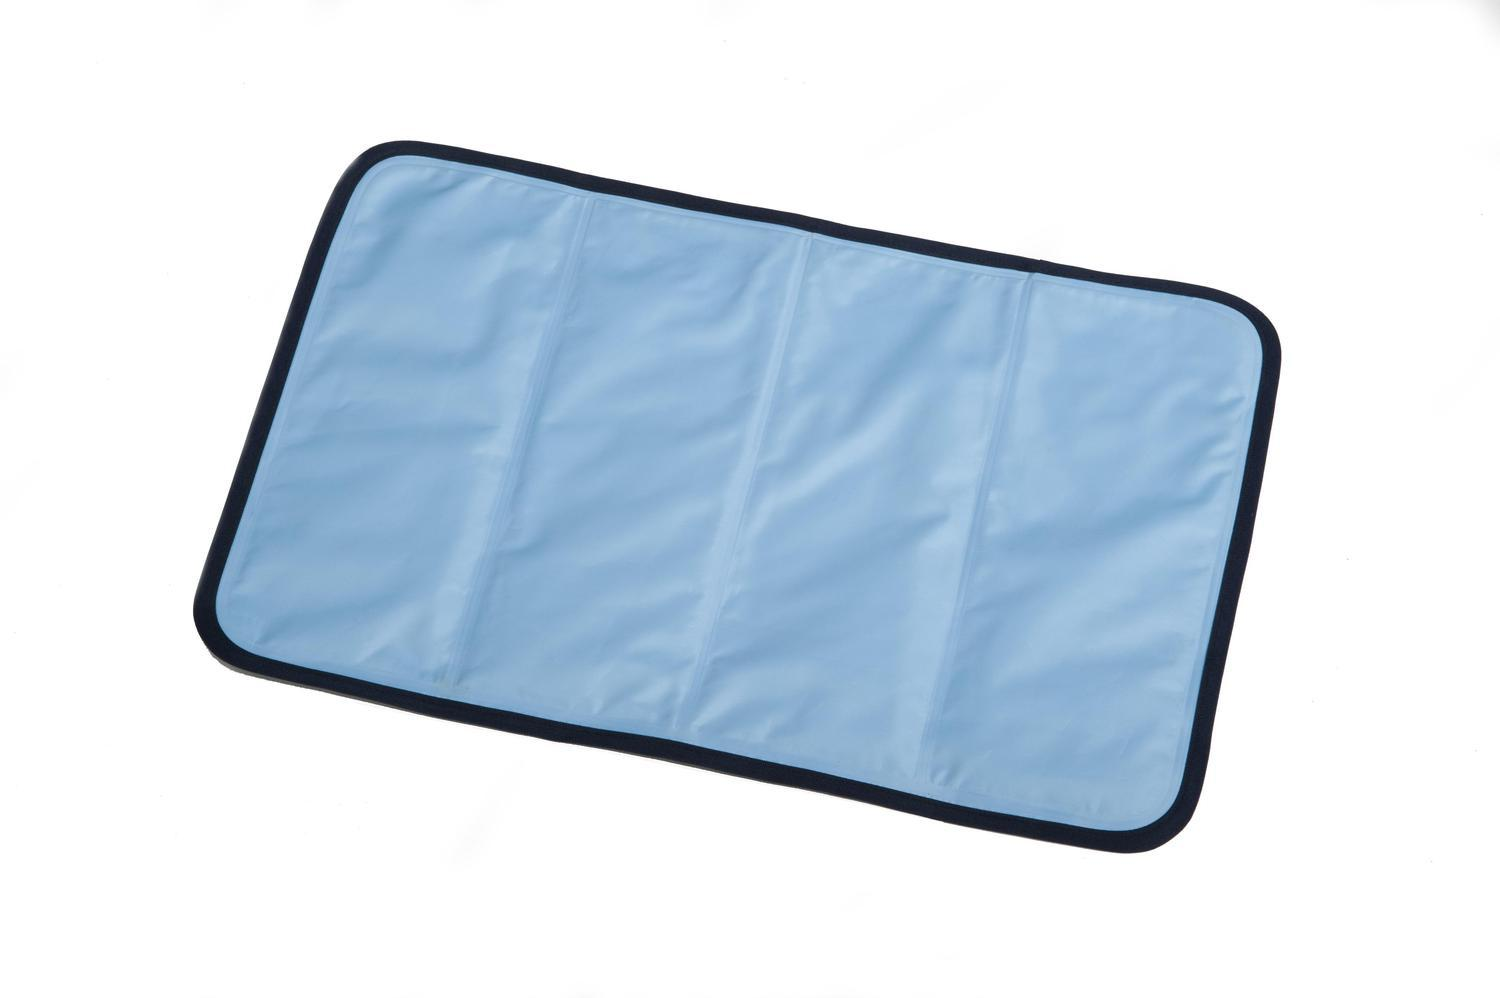 Pcm Cooling Pad Pillow Topper From Slumberslumber Com